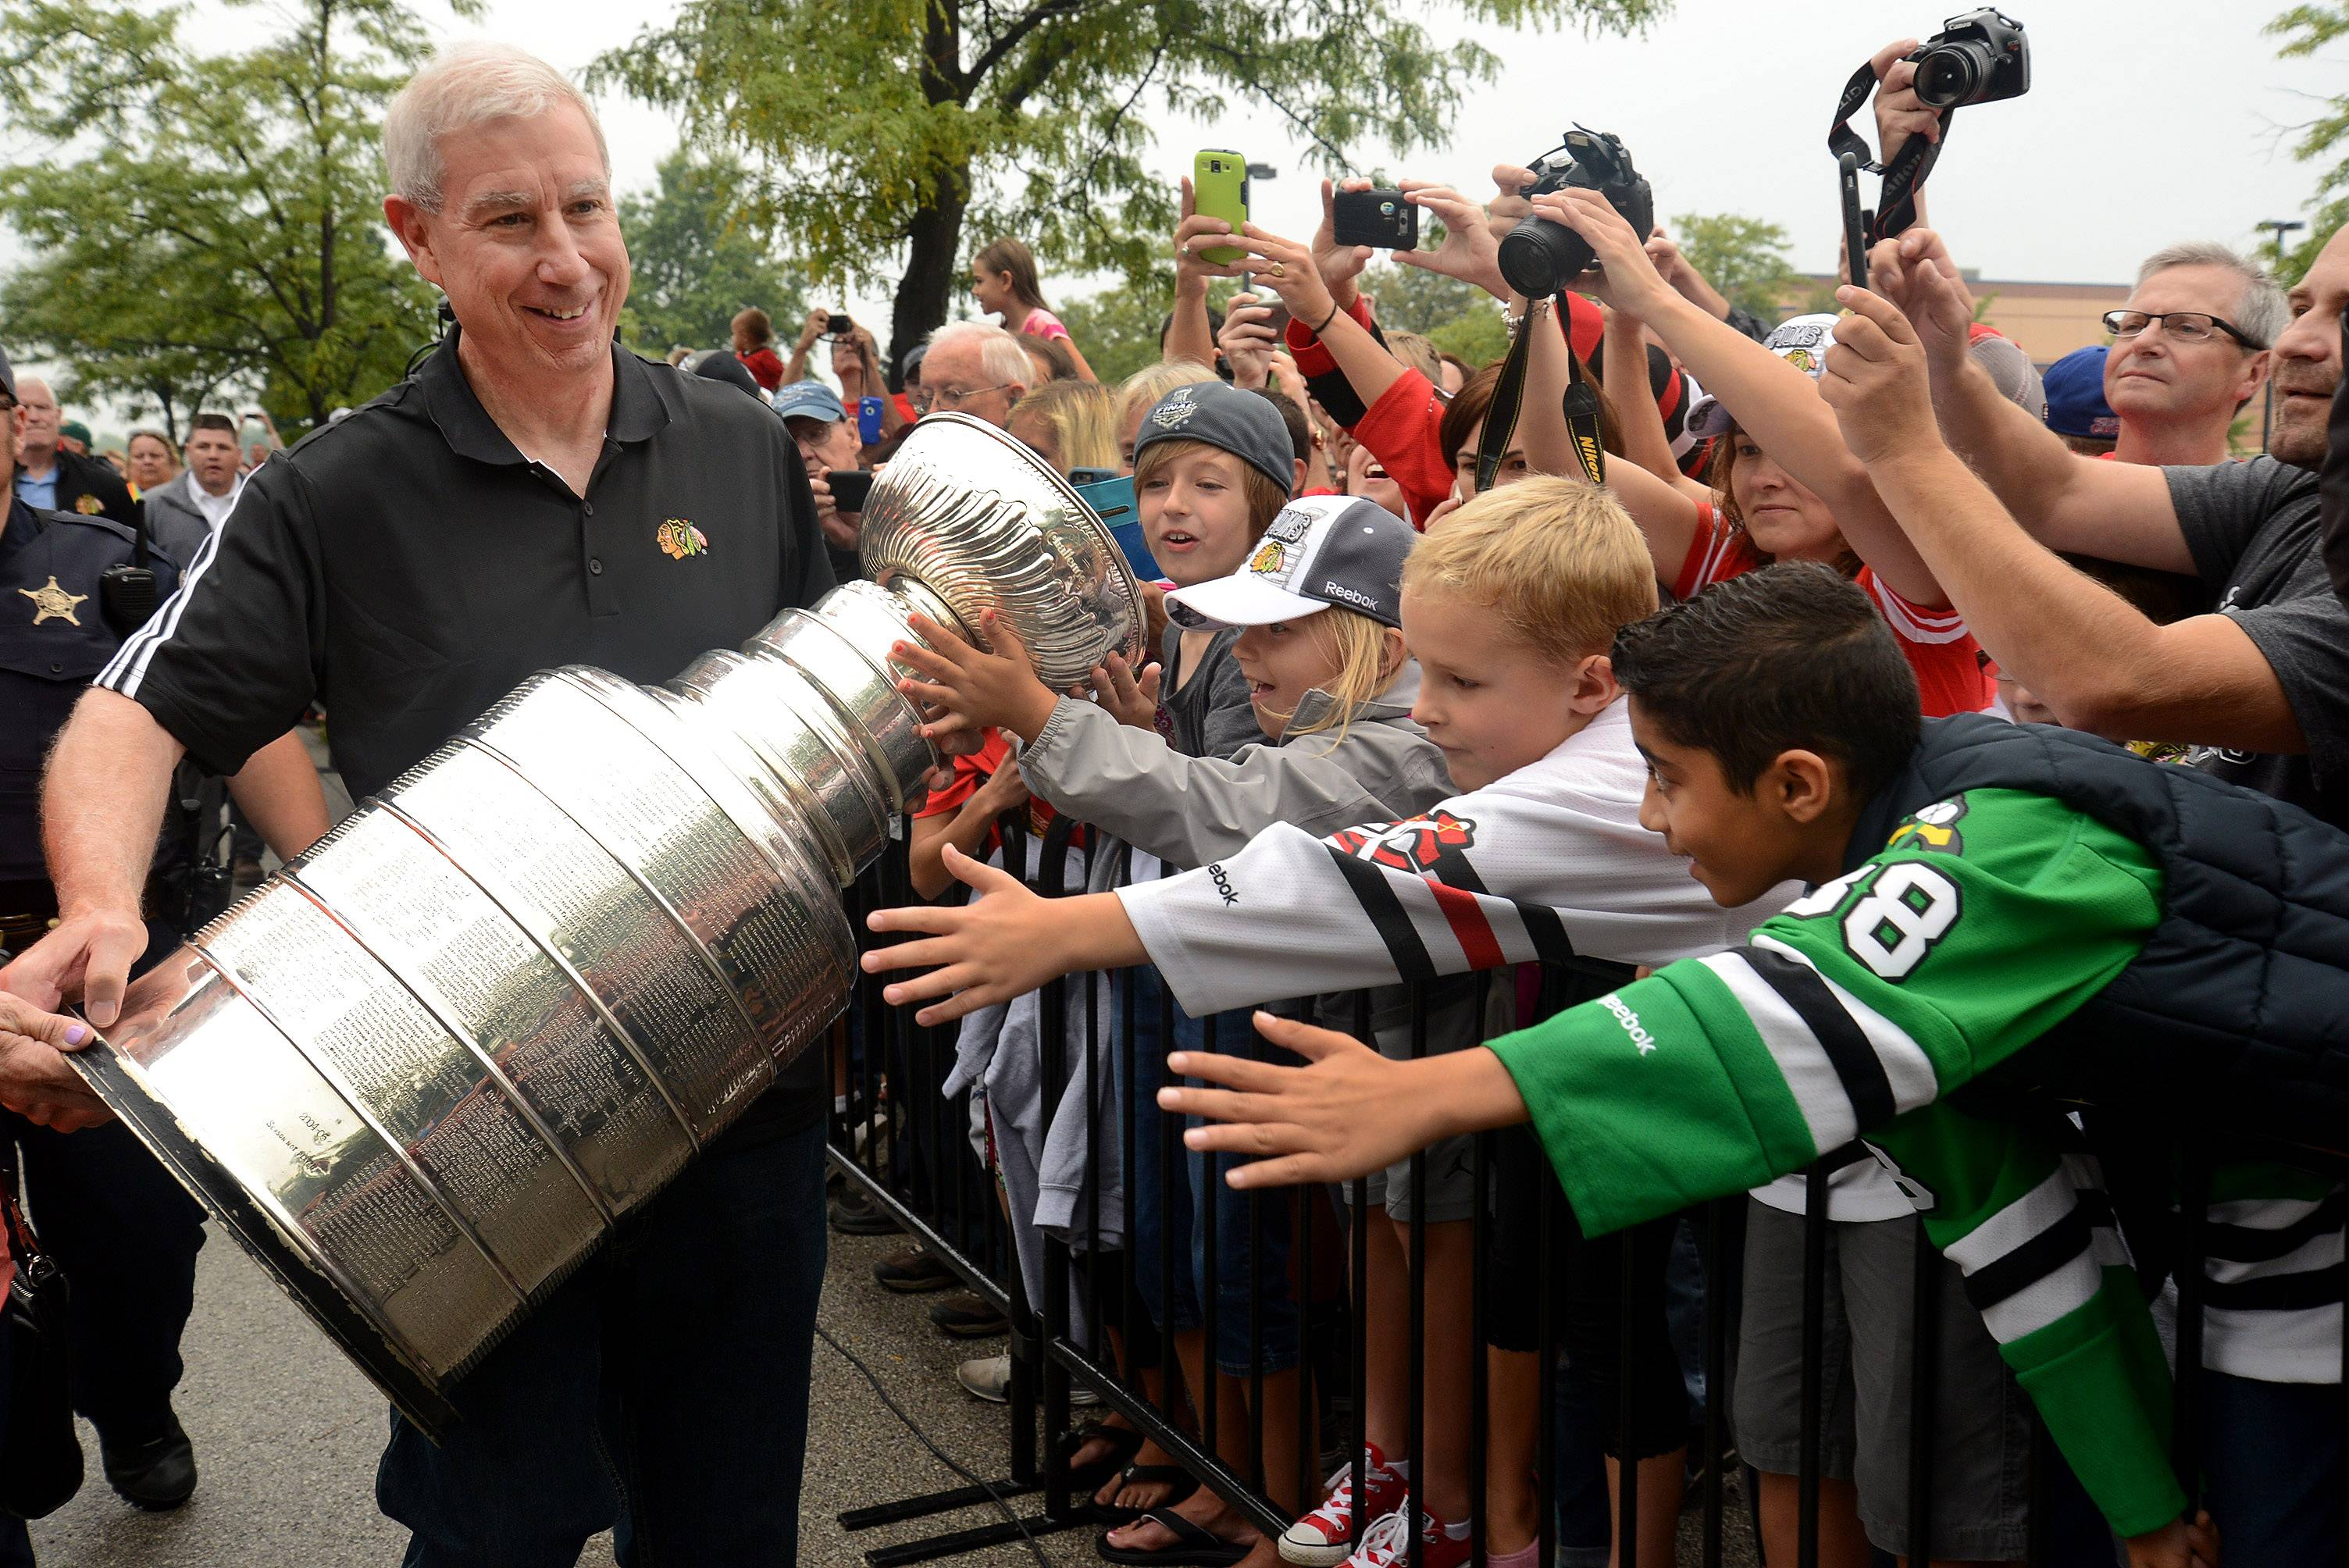 Blackhawks team President and CEO John McDonough brings the Stanley Cup back to Elk Grove Village during a rally Saturday morning.